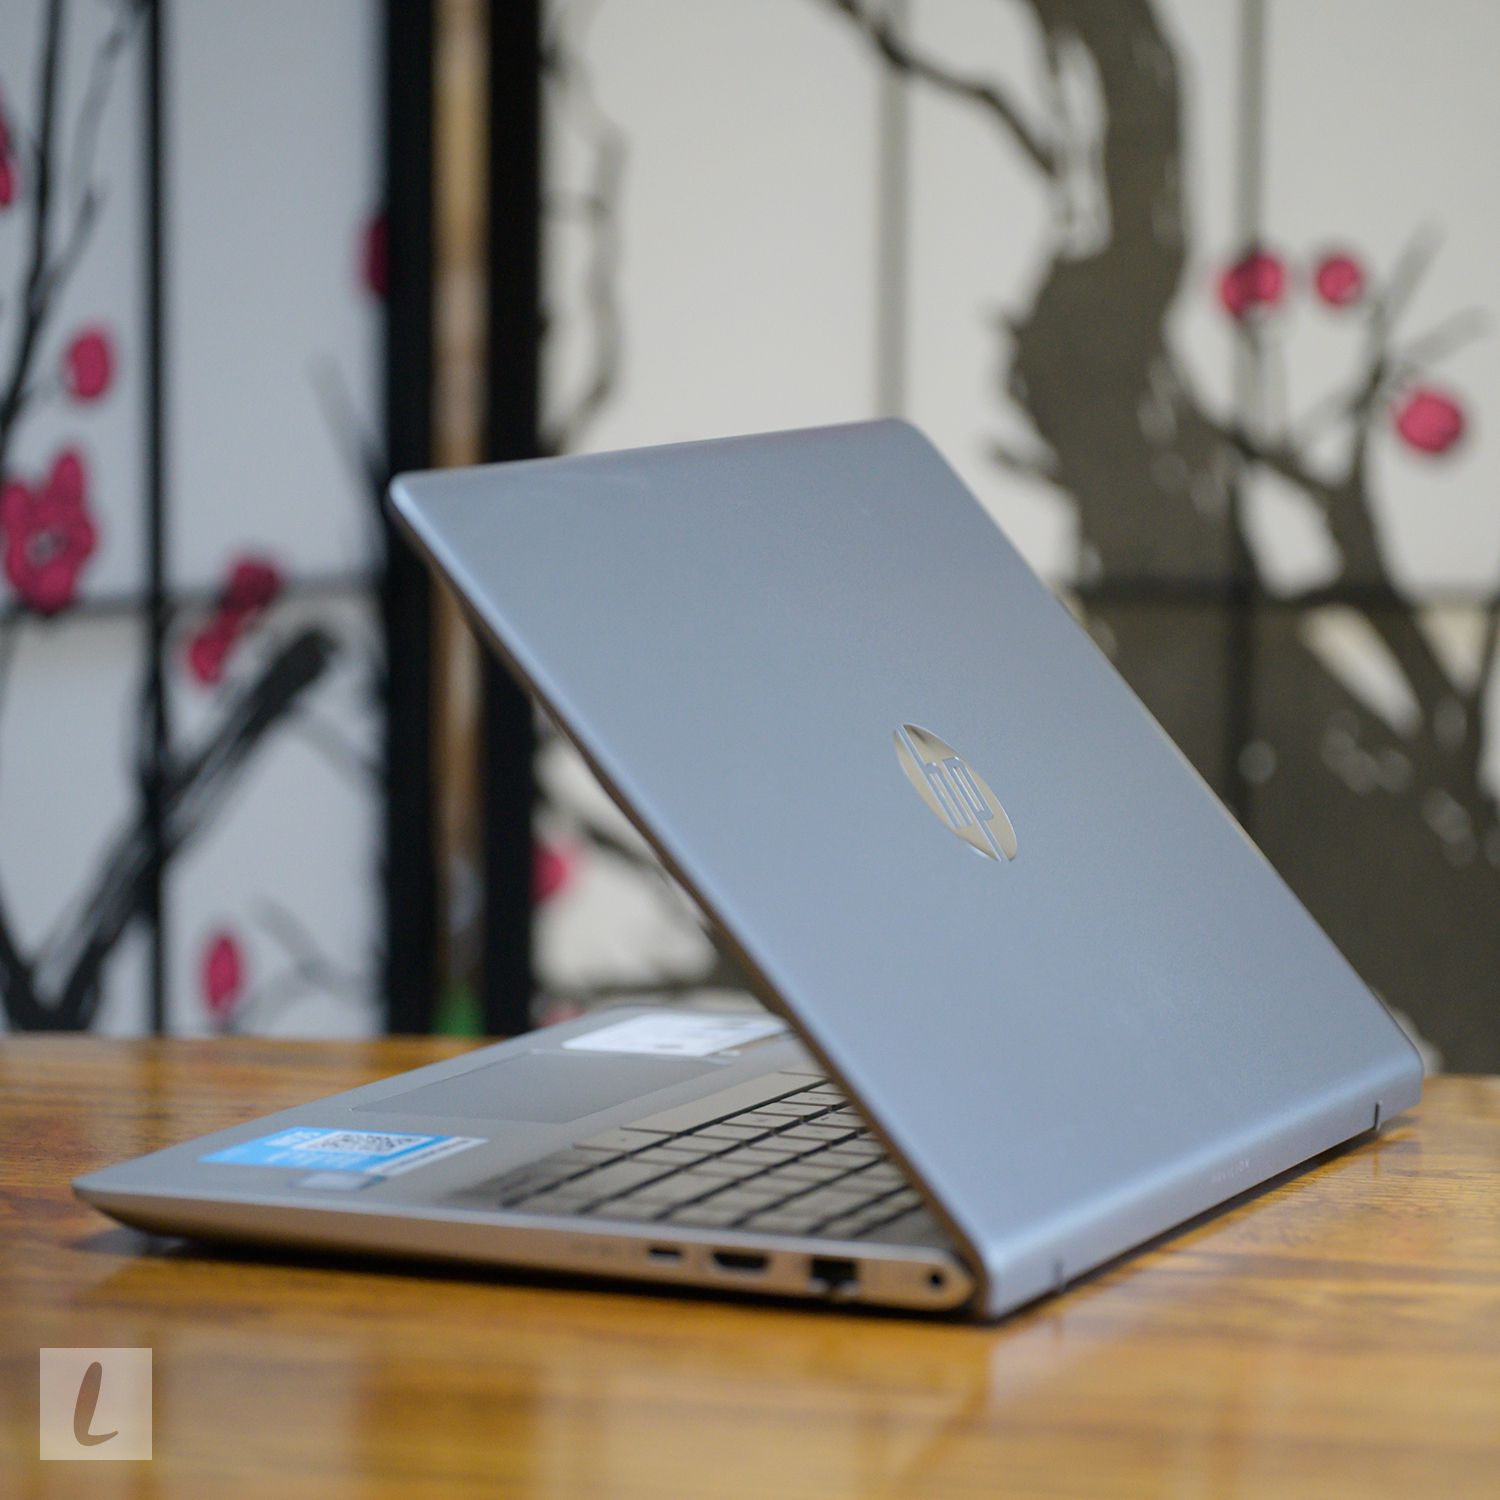 Hp Pavilion 14 Hd Notebook Review Perfectly Ordinary Performance